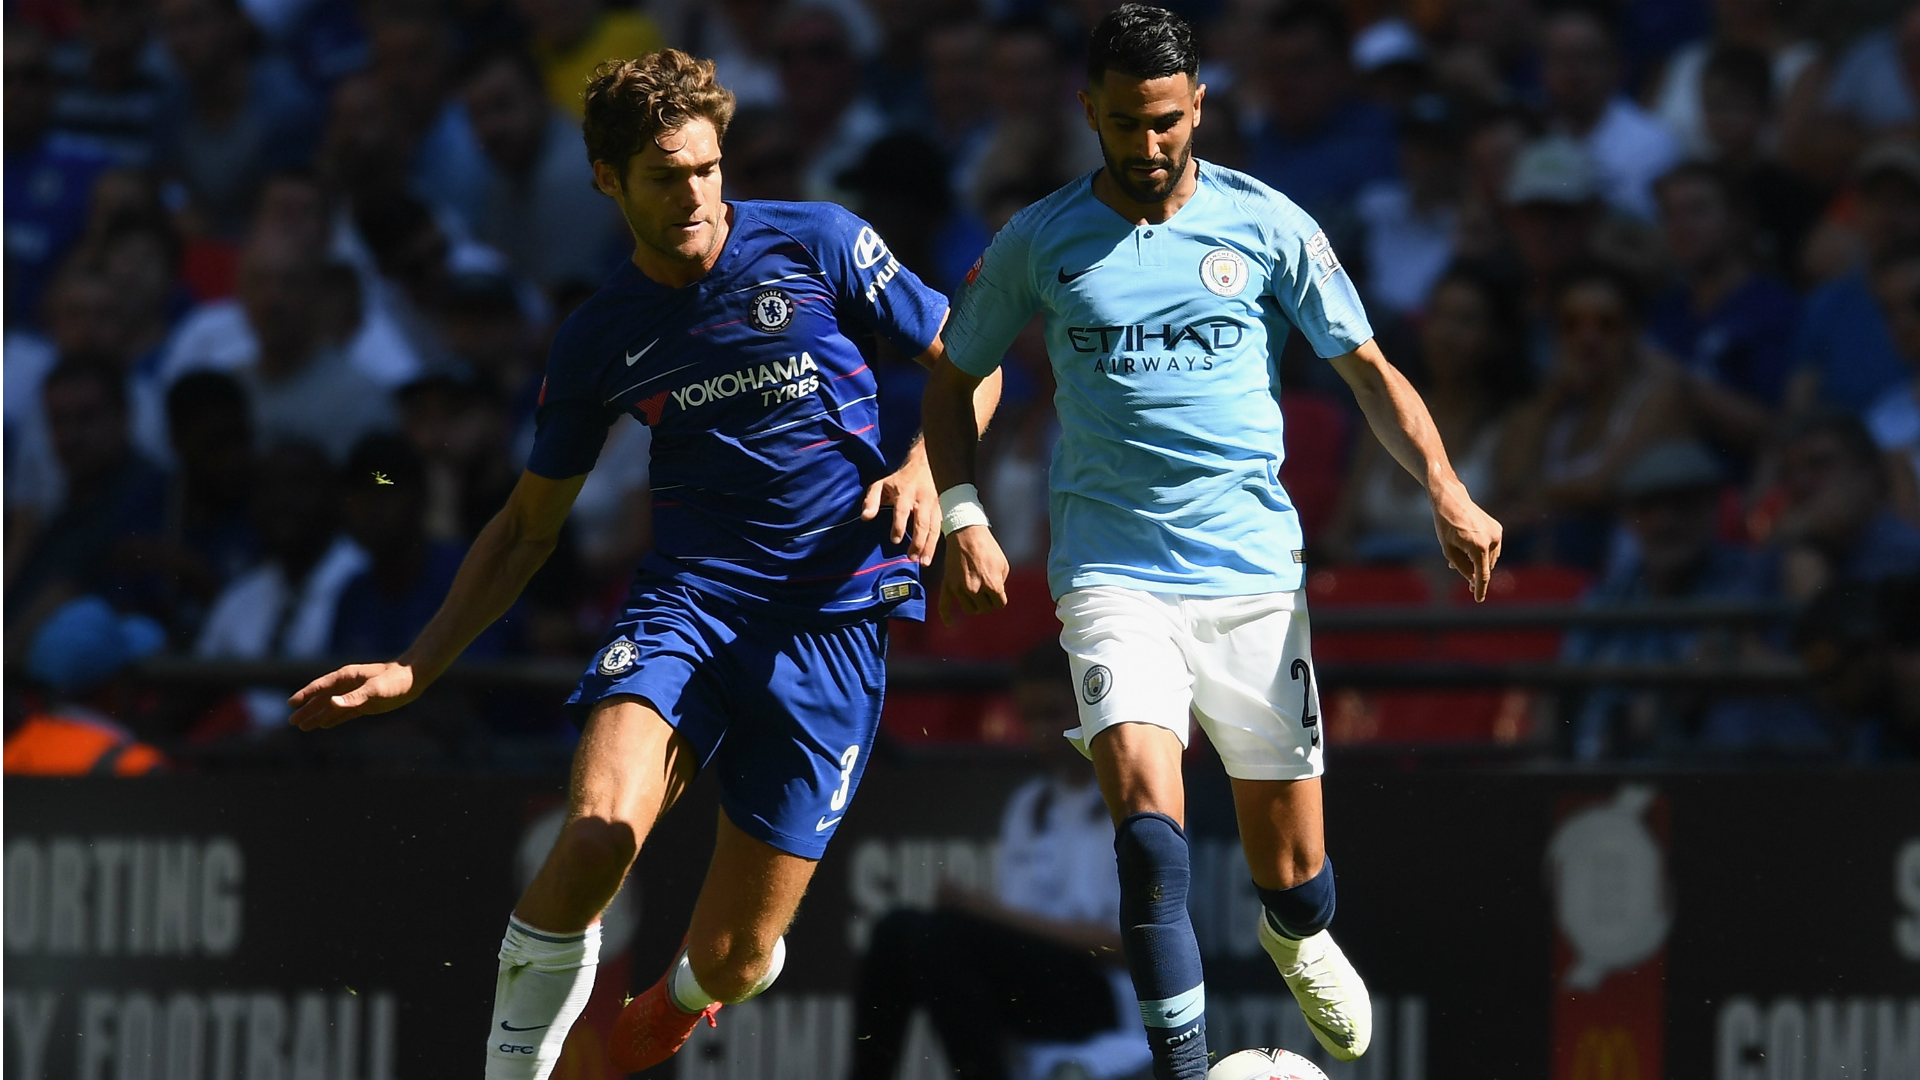 Video: Direct Comparison - Chelsea vs. Man City - Goal.com